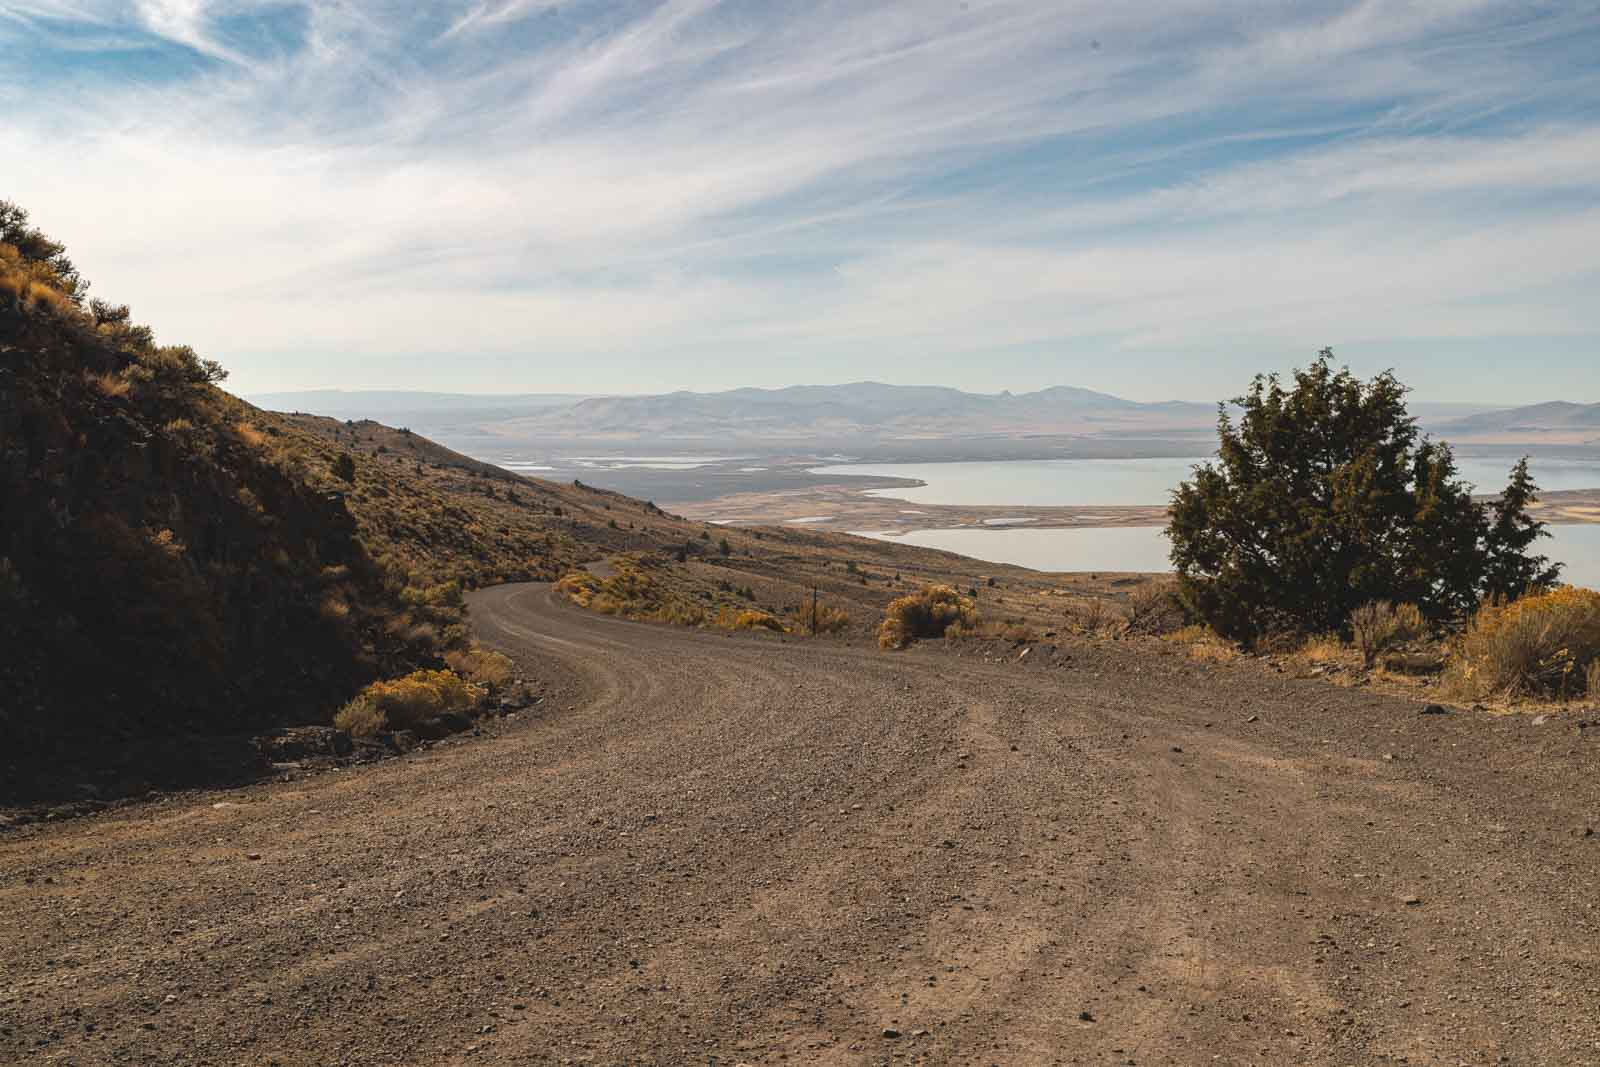 The road to Hart Mountain is another great spot to add to your Oregon itinerary.